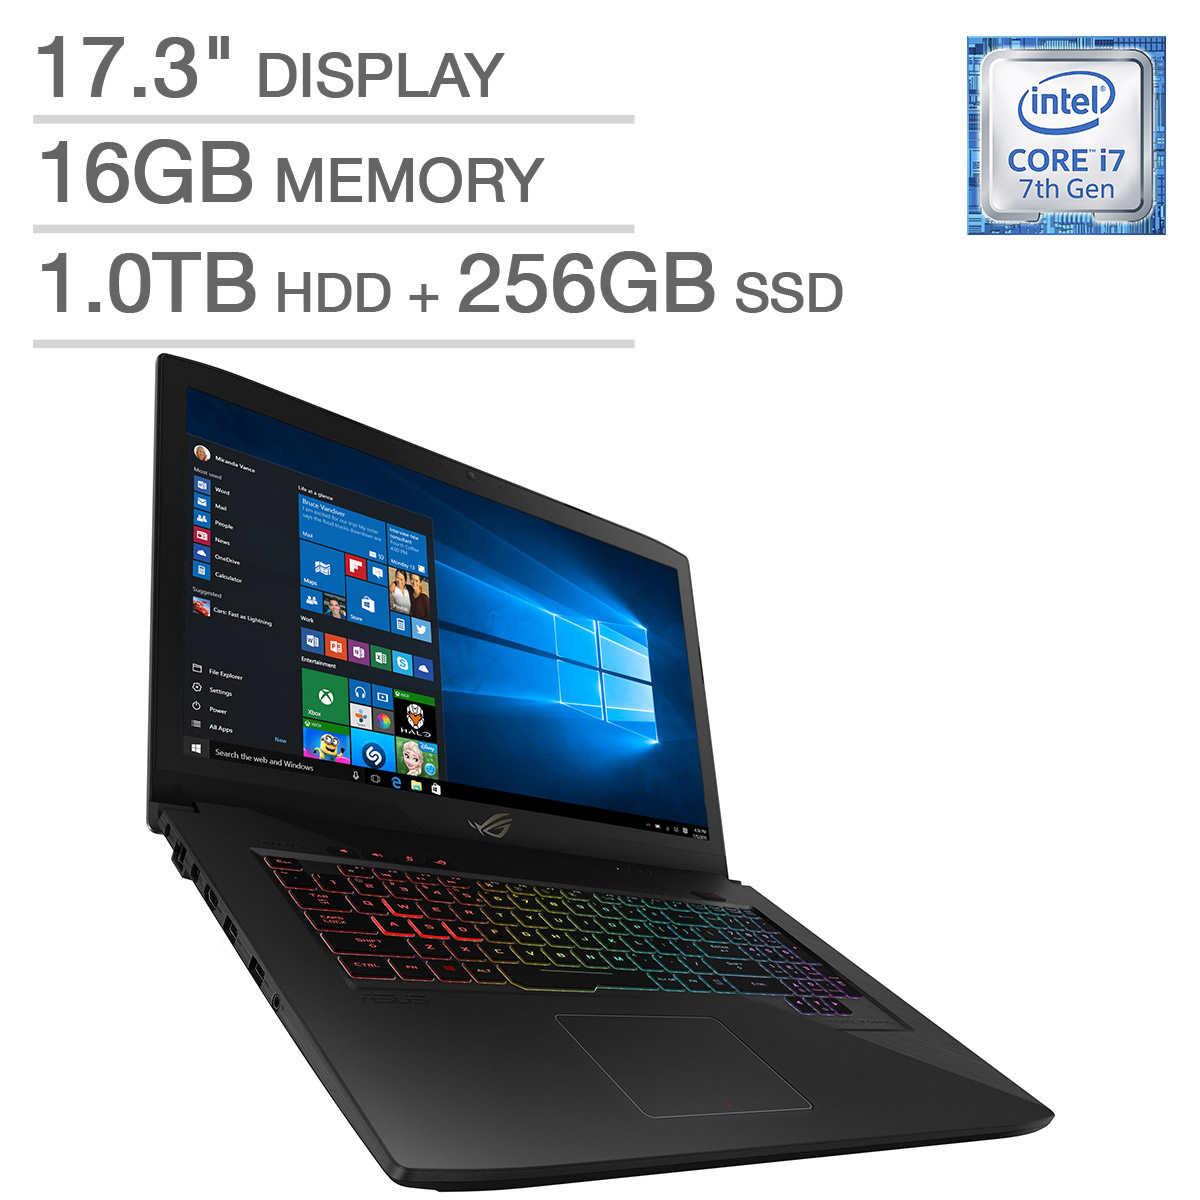 ASUS ROG GL703VM Gaming Laptop Intel Core i7 1080p 6GB NVIDIA Graphics by ASUS